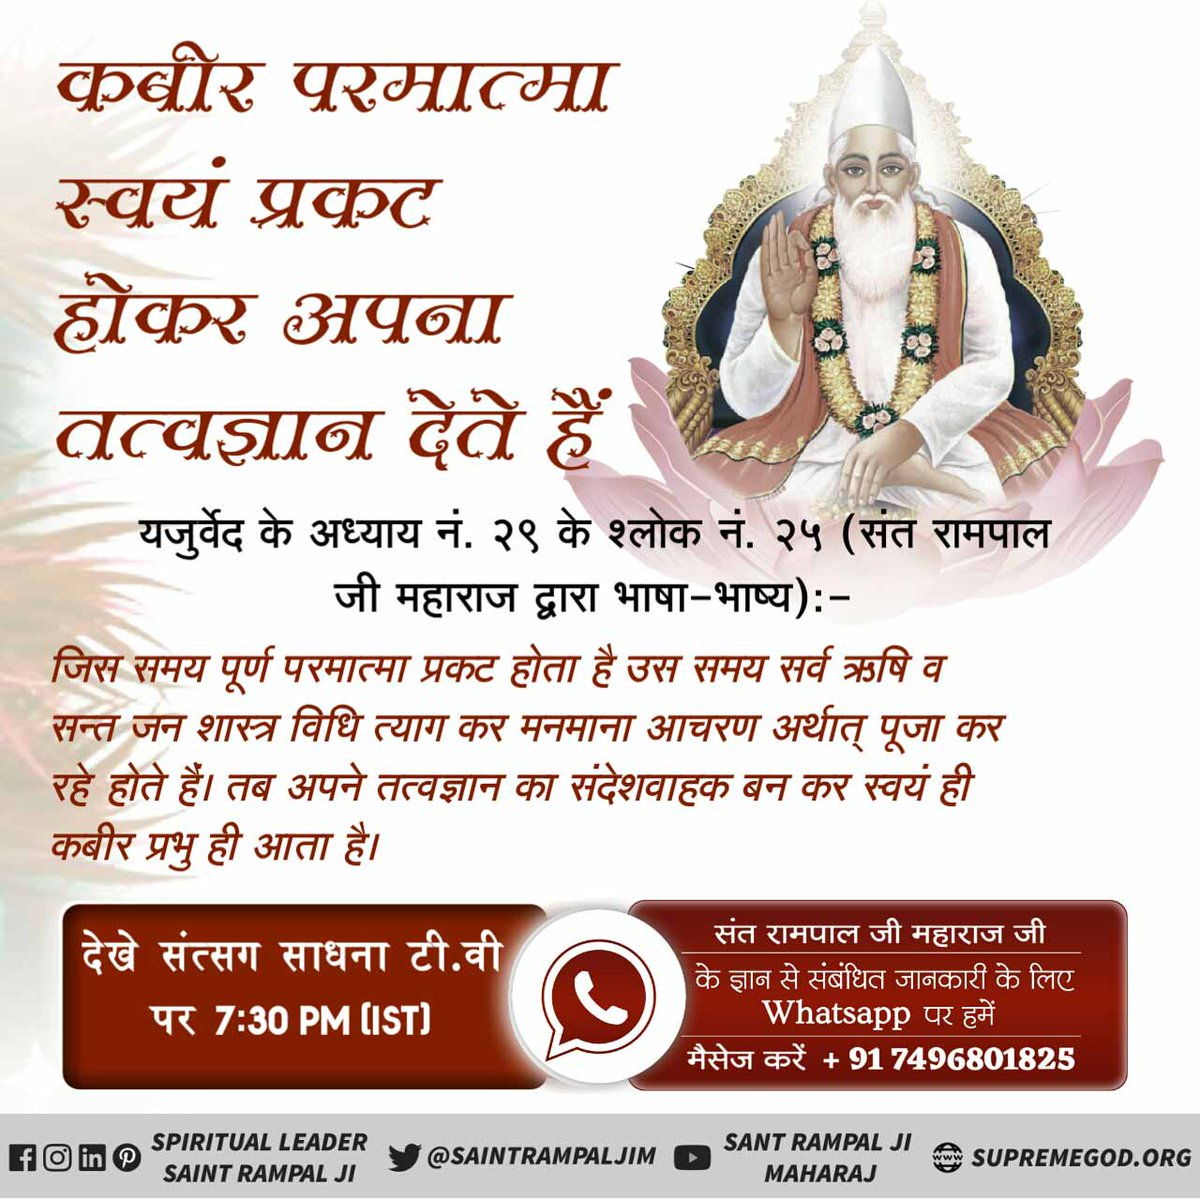 #GodMorningSunday #sundayvibes     If the name of the god is chanted with special reverence and longing, then the seeker gets special and quick benefits.    ~ @SaintRampalJiM  #GodMorningSunday     To know more, please visit Sant Rampal Ji Maharaj Youtube